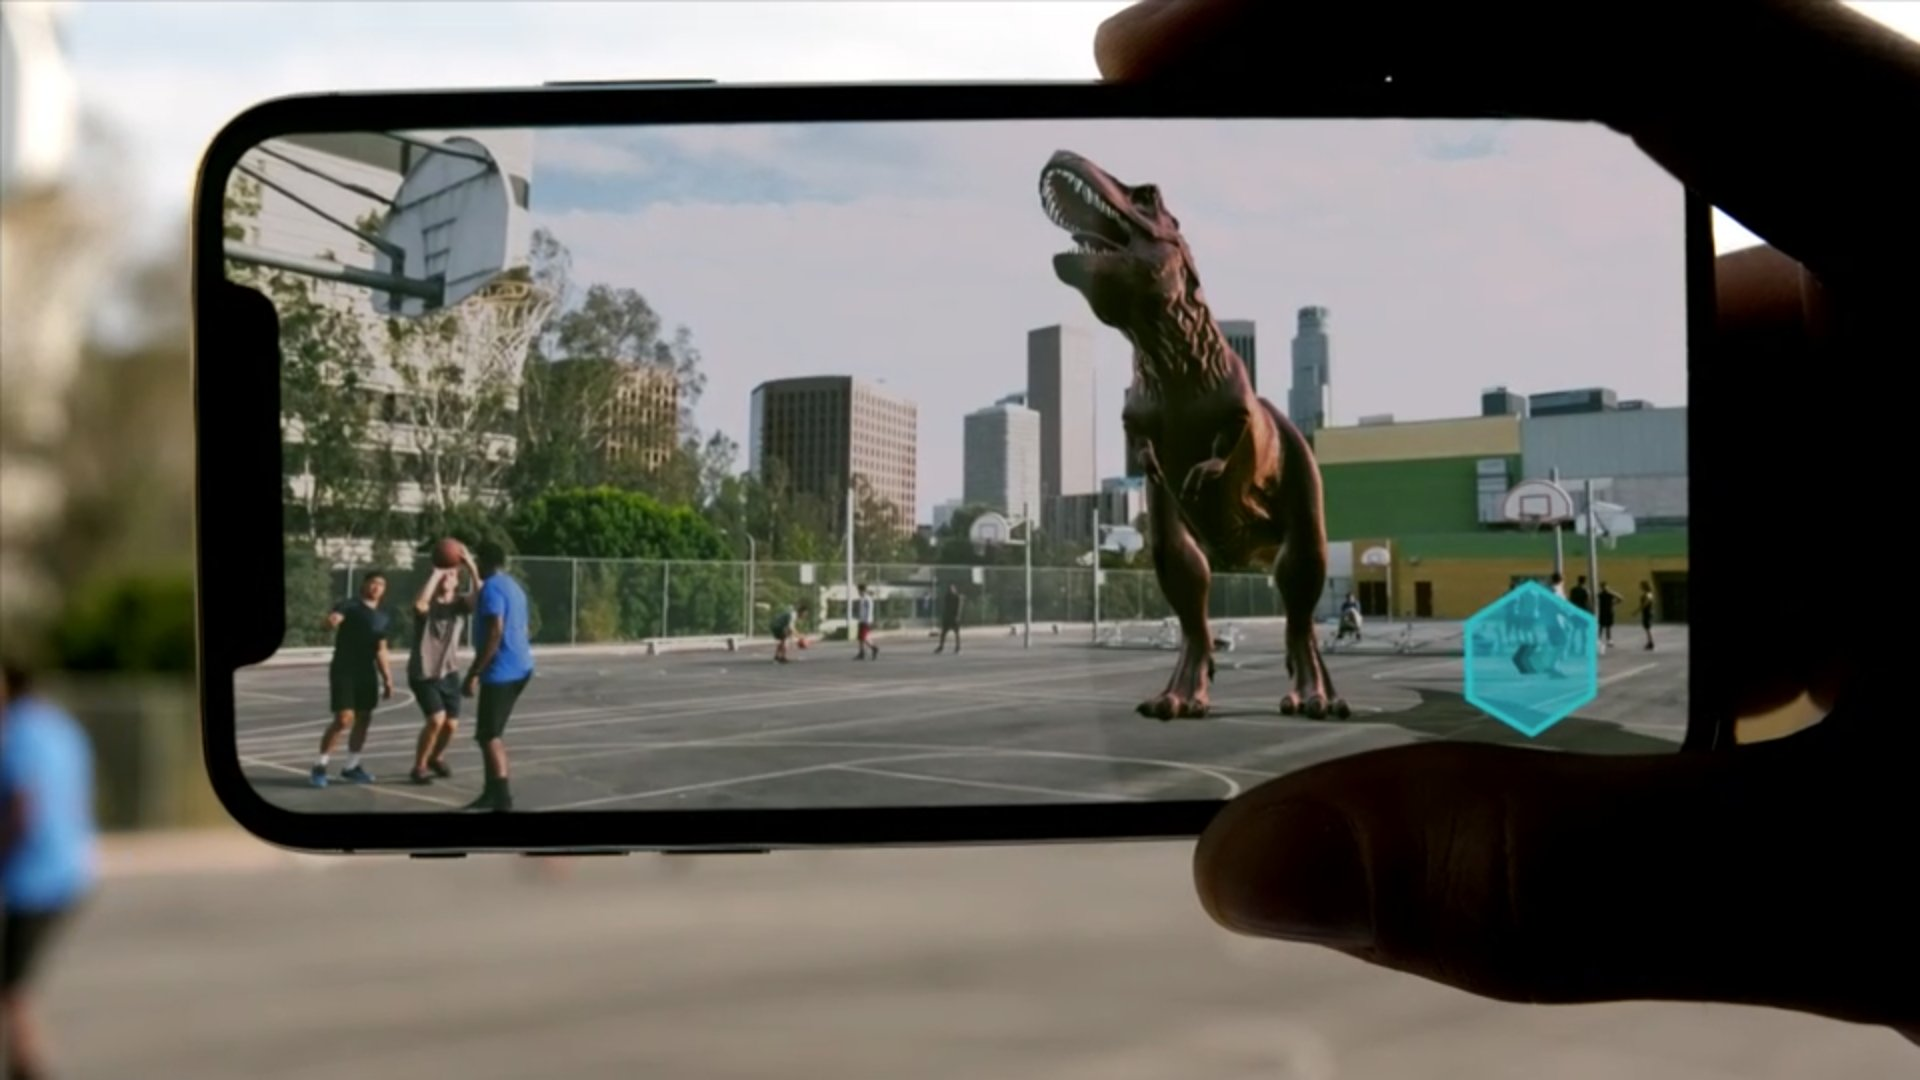 With augmented reality on the iPhone X, you can... play basketball with a Tyrannosaurus rex. #AppleEvent https://t.co/J3g0Jhm3Yd